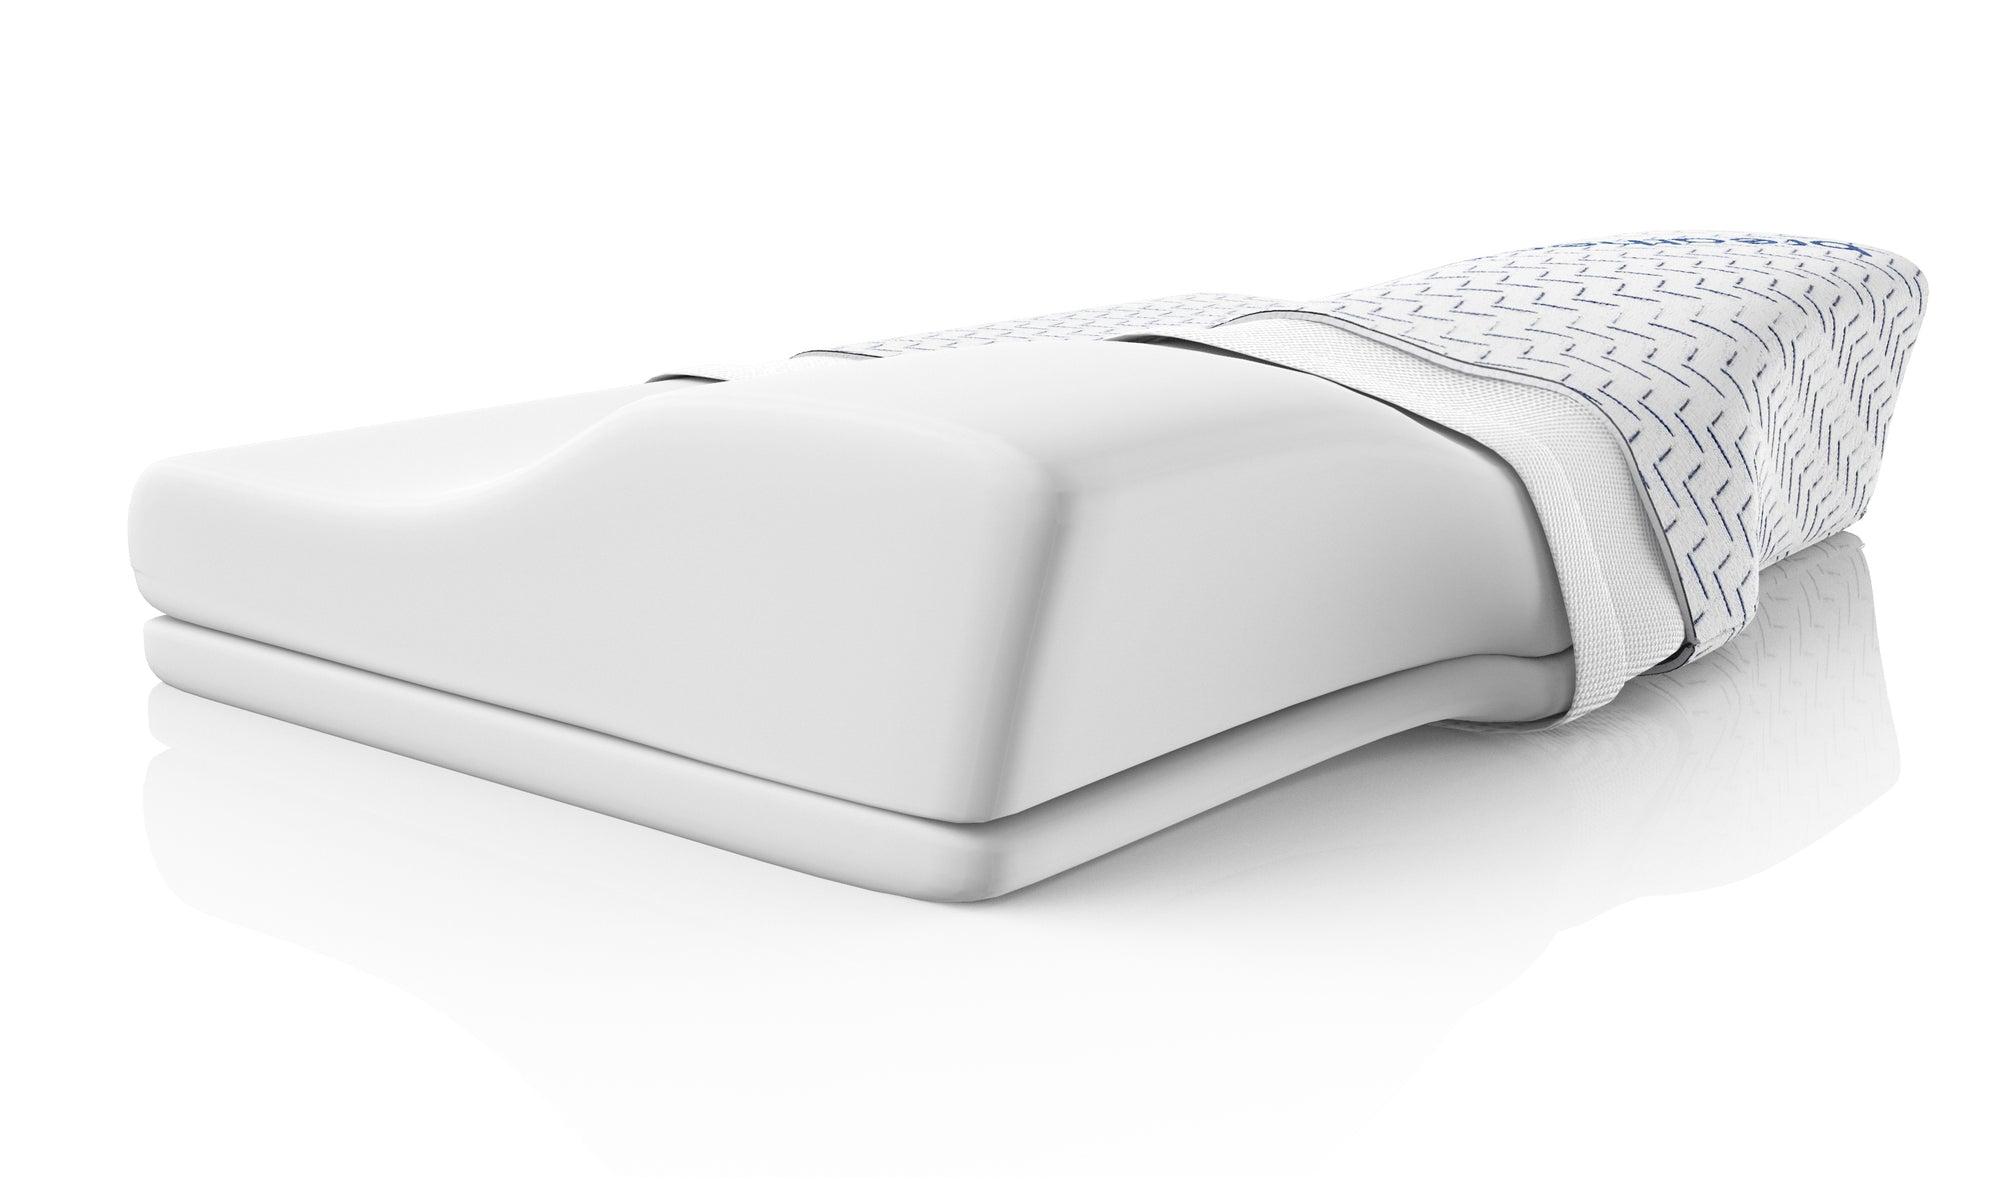 the breatheo contoured memory foam pillow assists your sleep posture during side and back sleeping